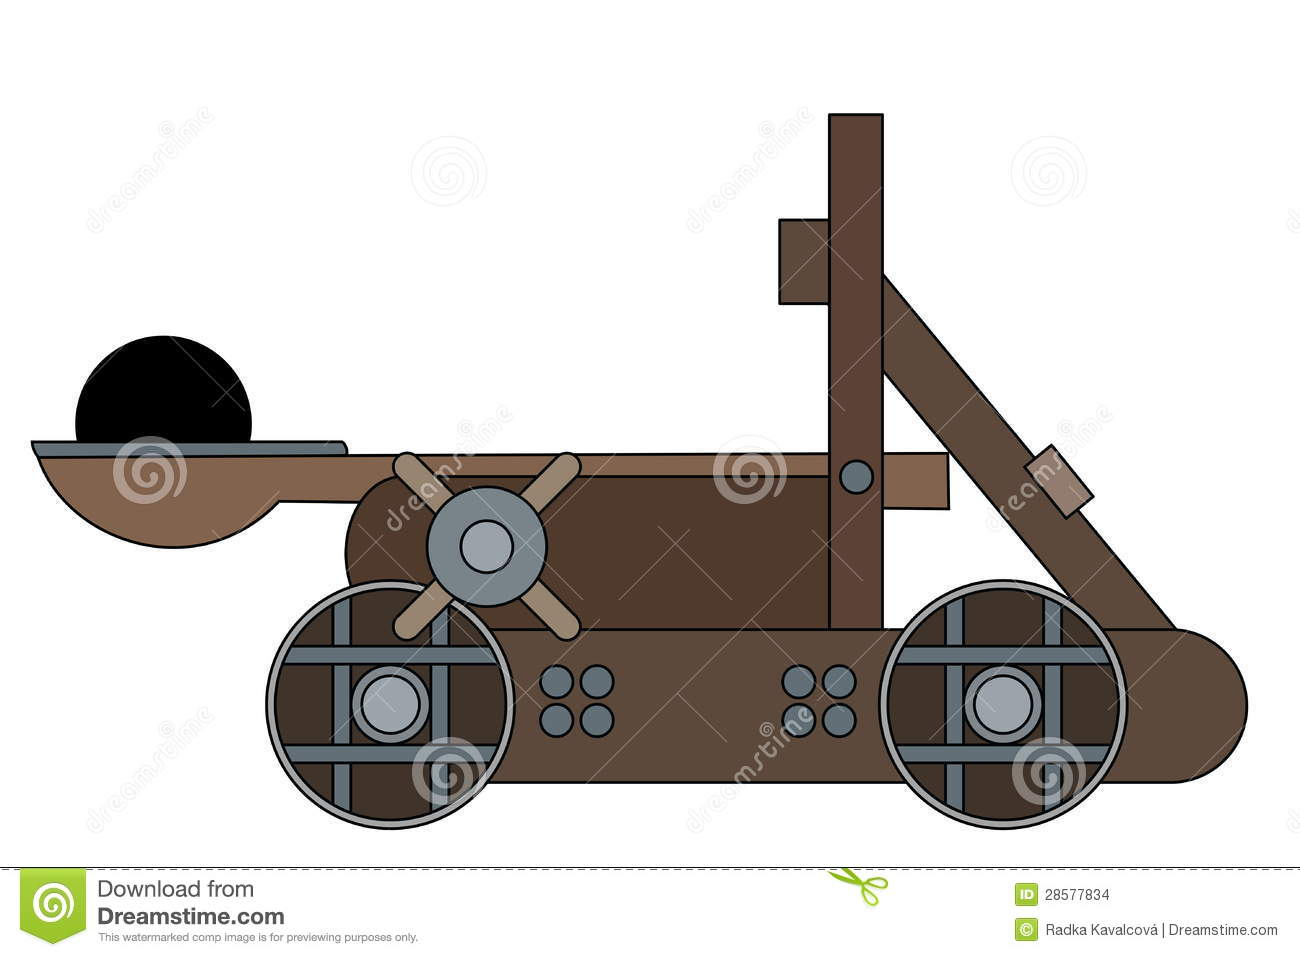 Catapult Cartoon Stock Vector Illustration Of Object 28577834 Diagram